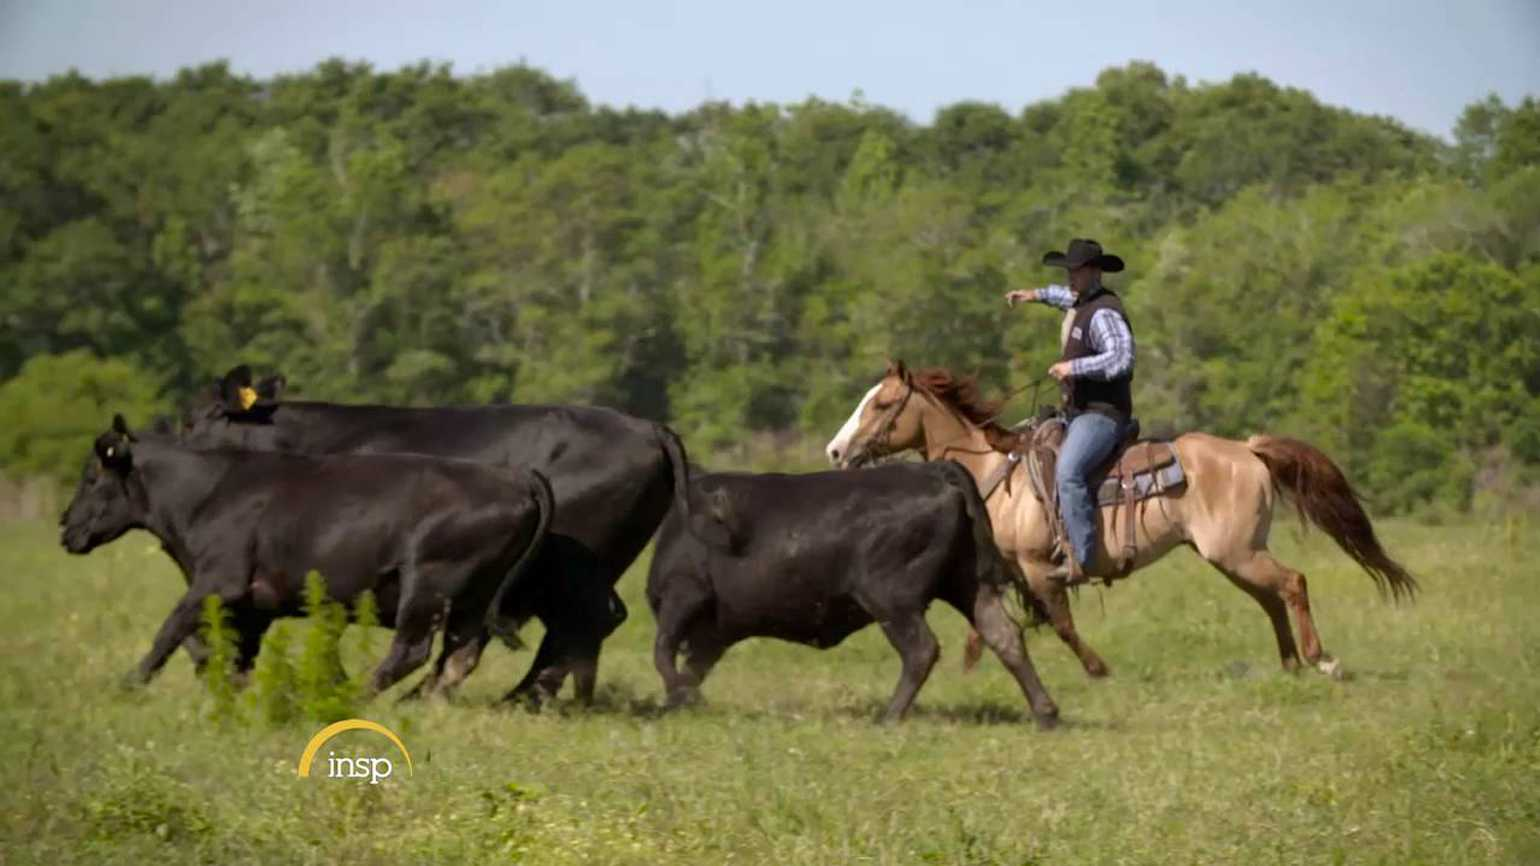 One of the cowboys wrangling a cow on their farm.